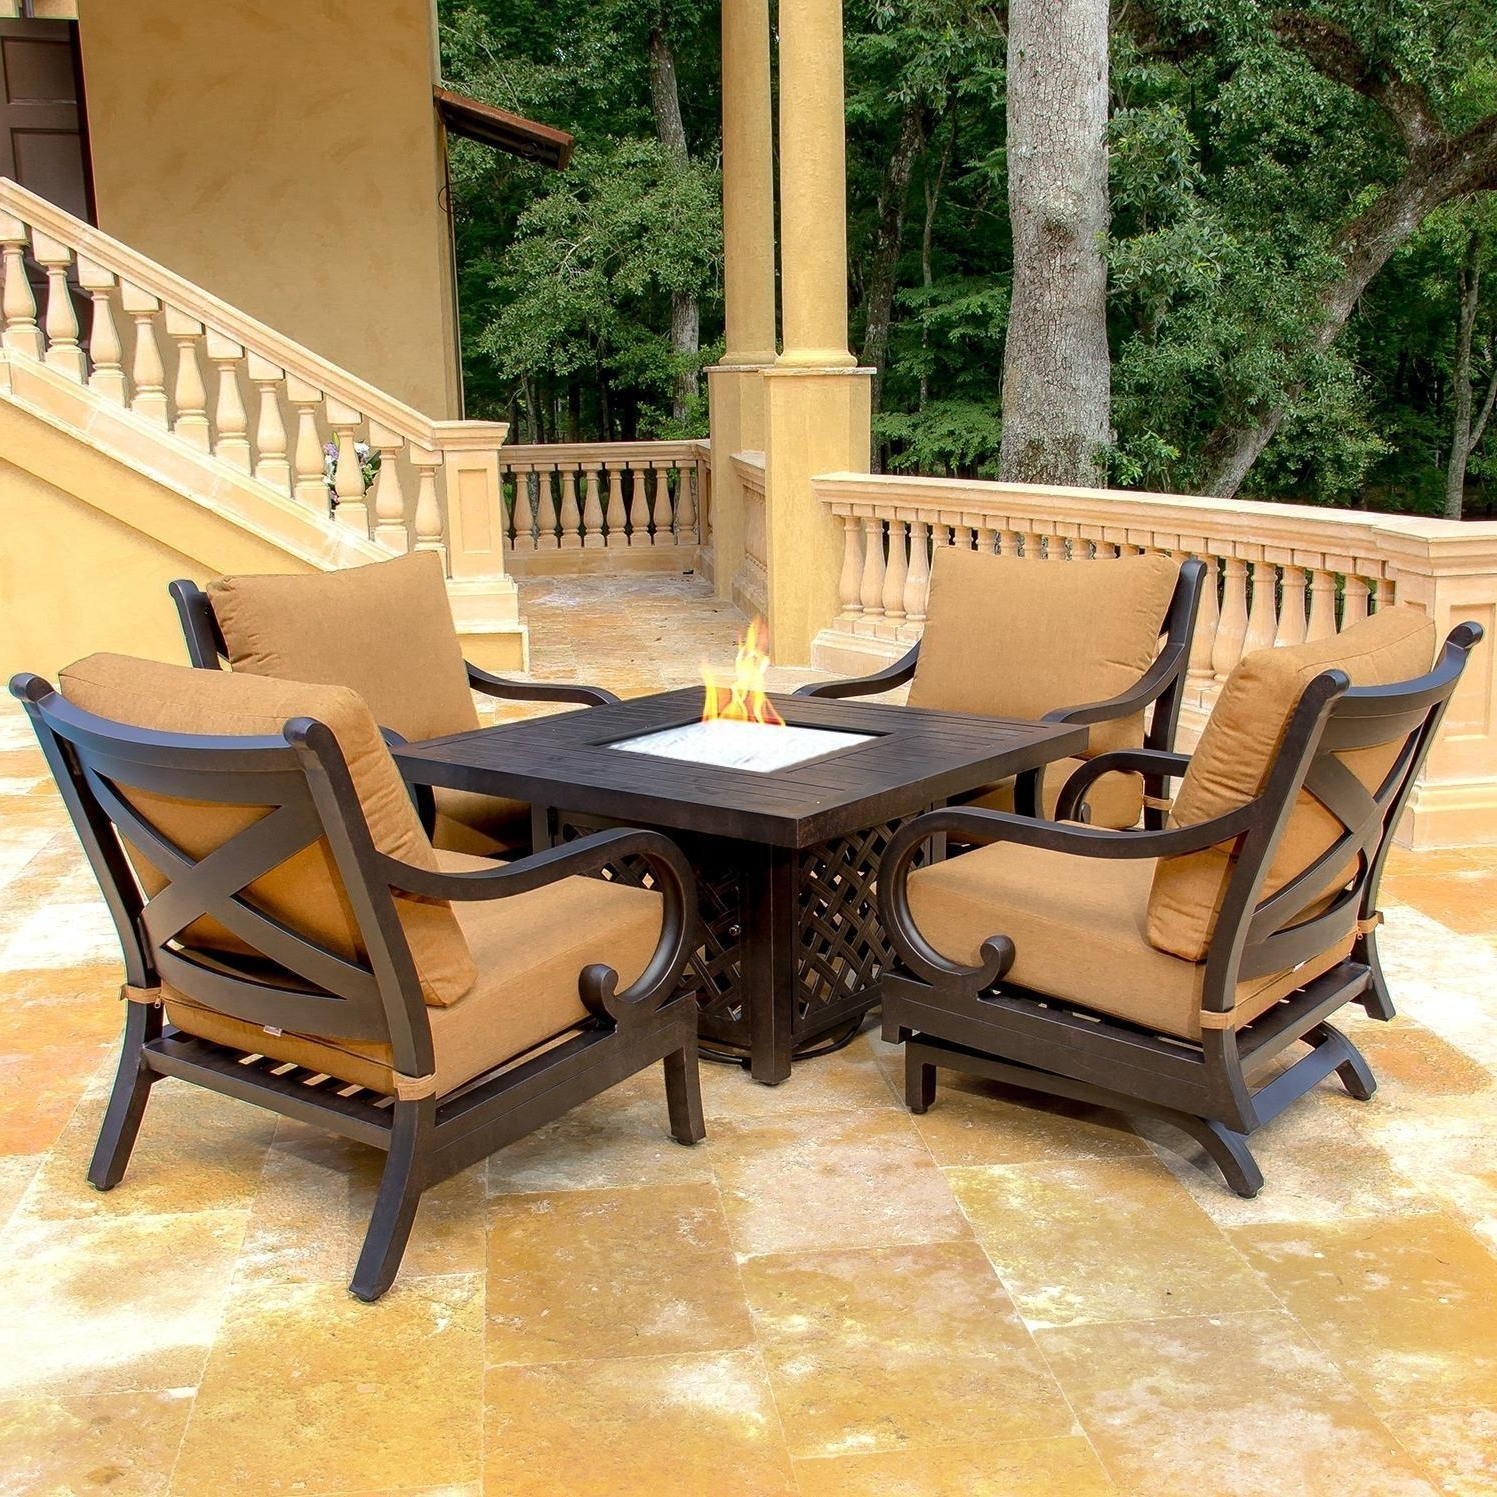 Patio Conversation Sets With Gas Fire Pit Intended For Popular 11 Patio Furniture Fire Pit (View 8 of 20)